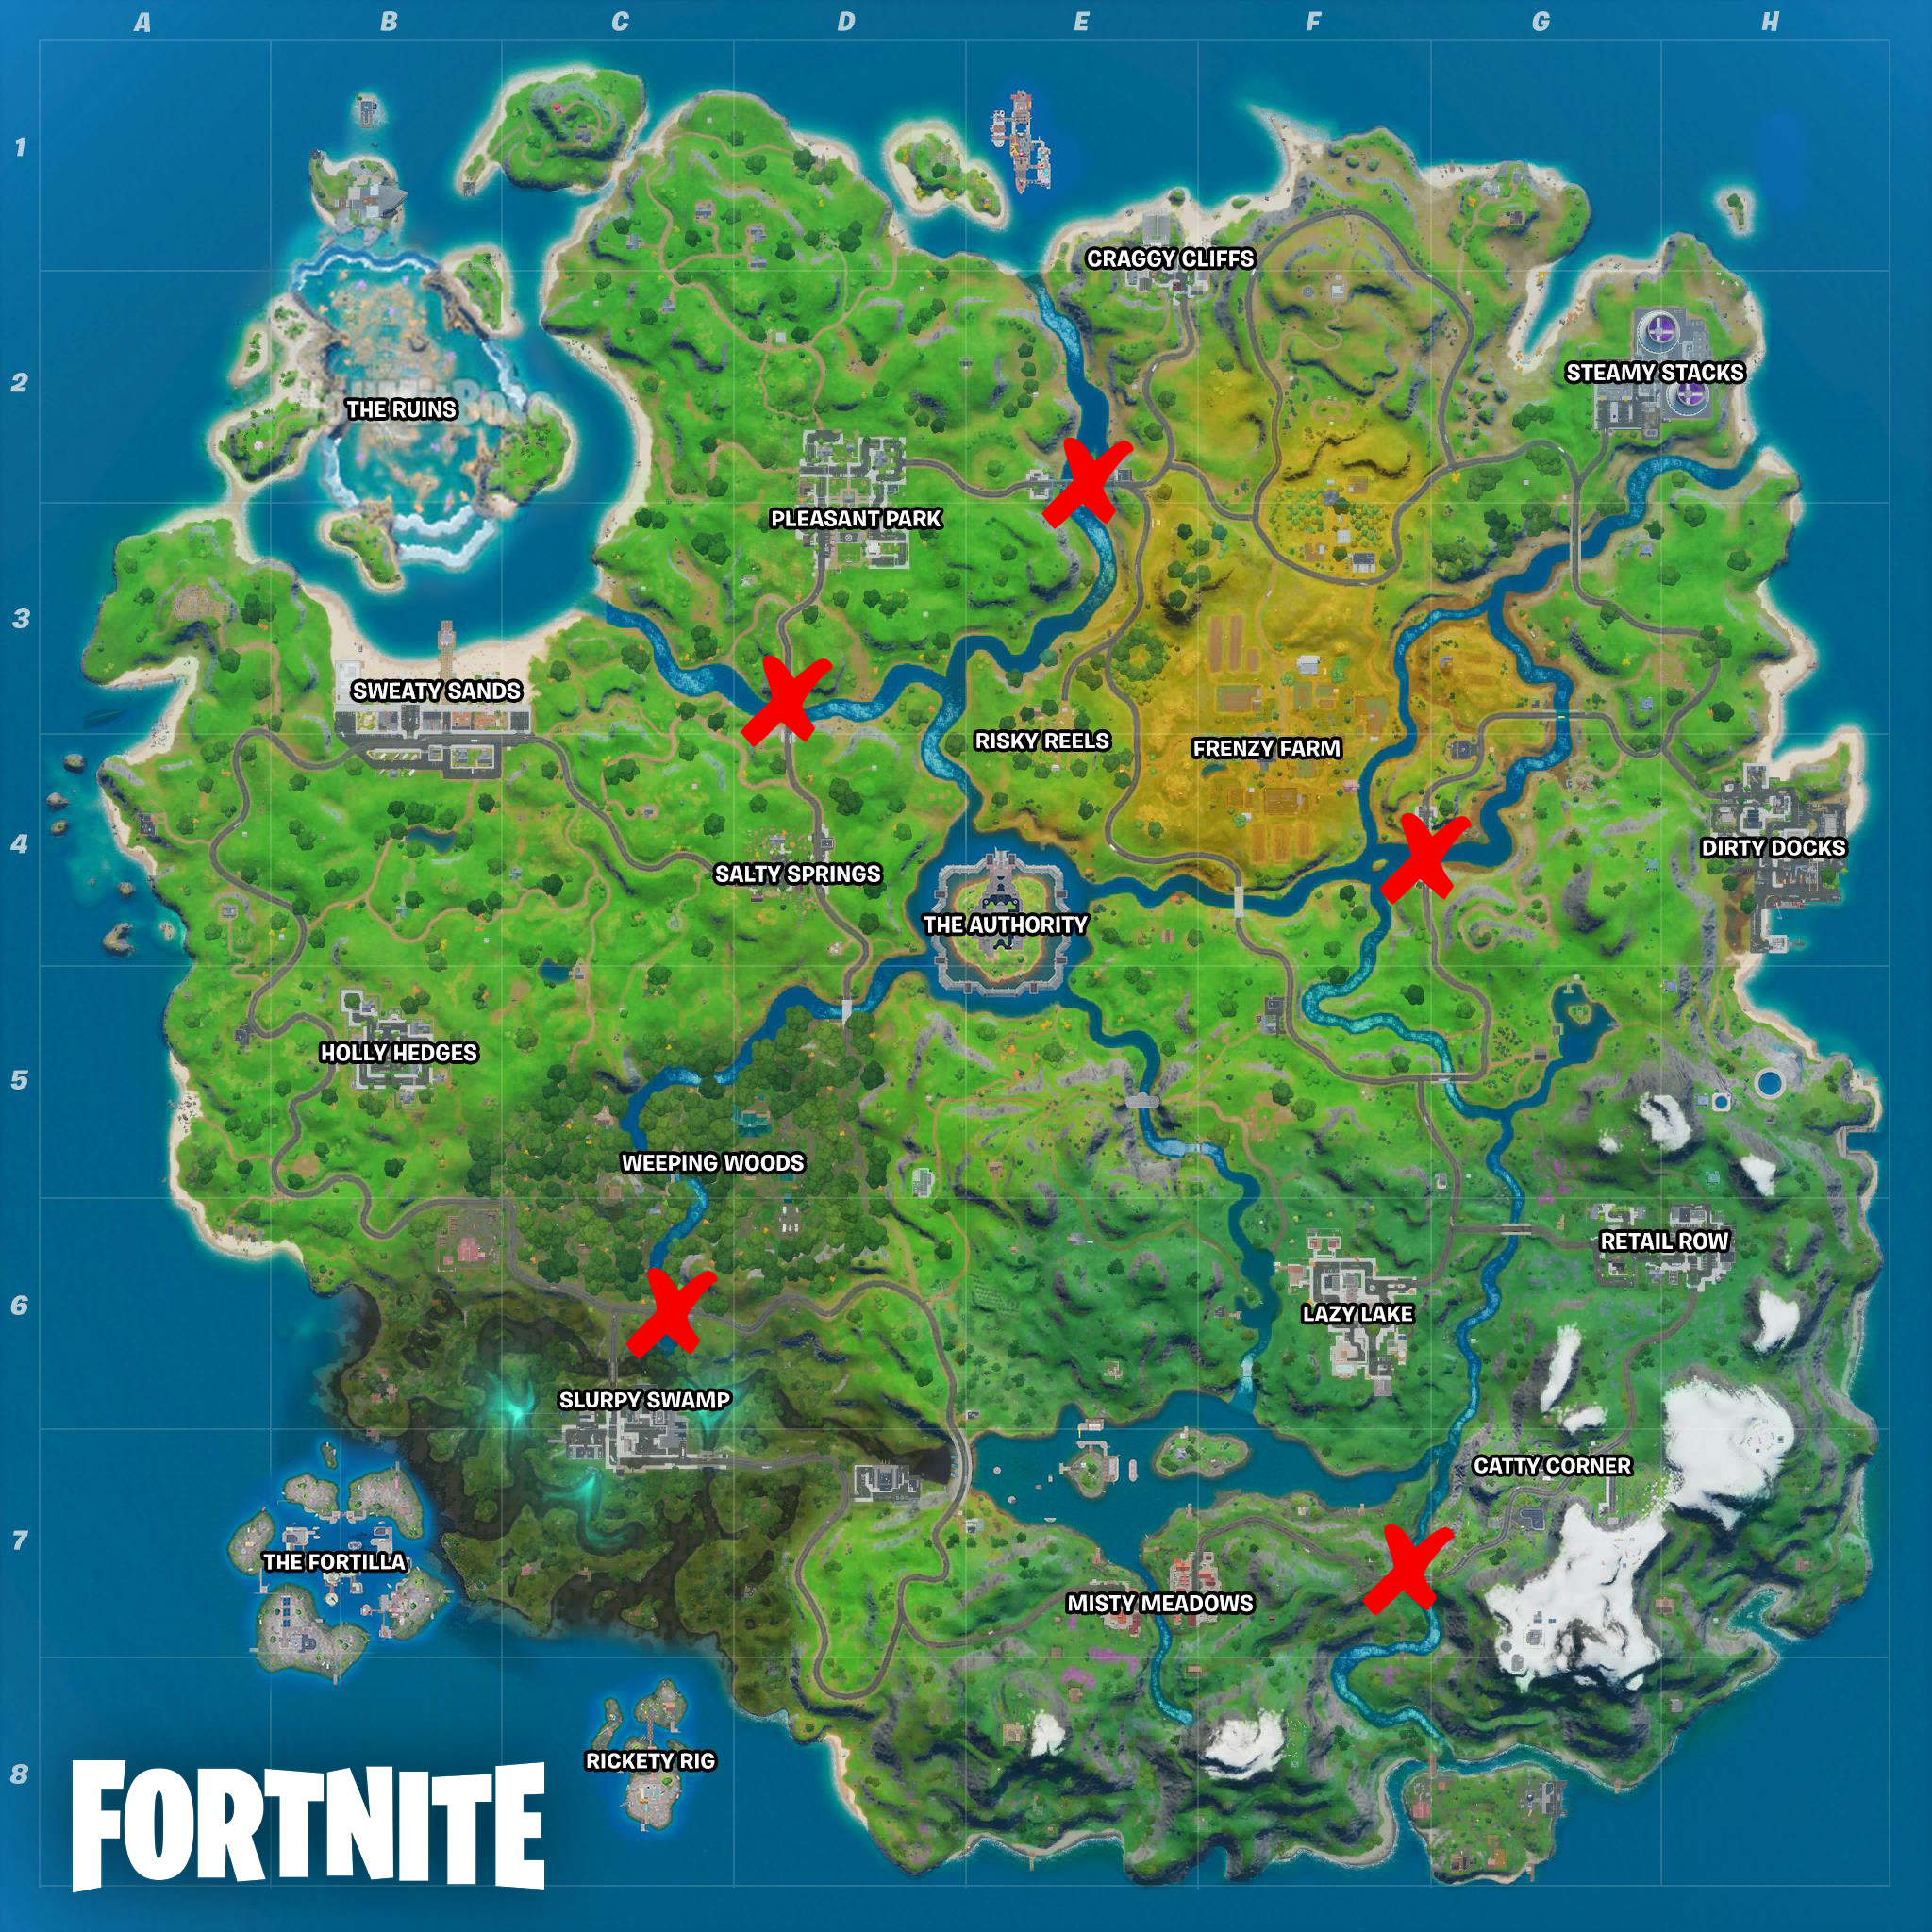 All steel bridge locations marked on fortnite chapter 2 map